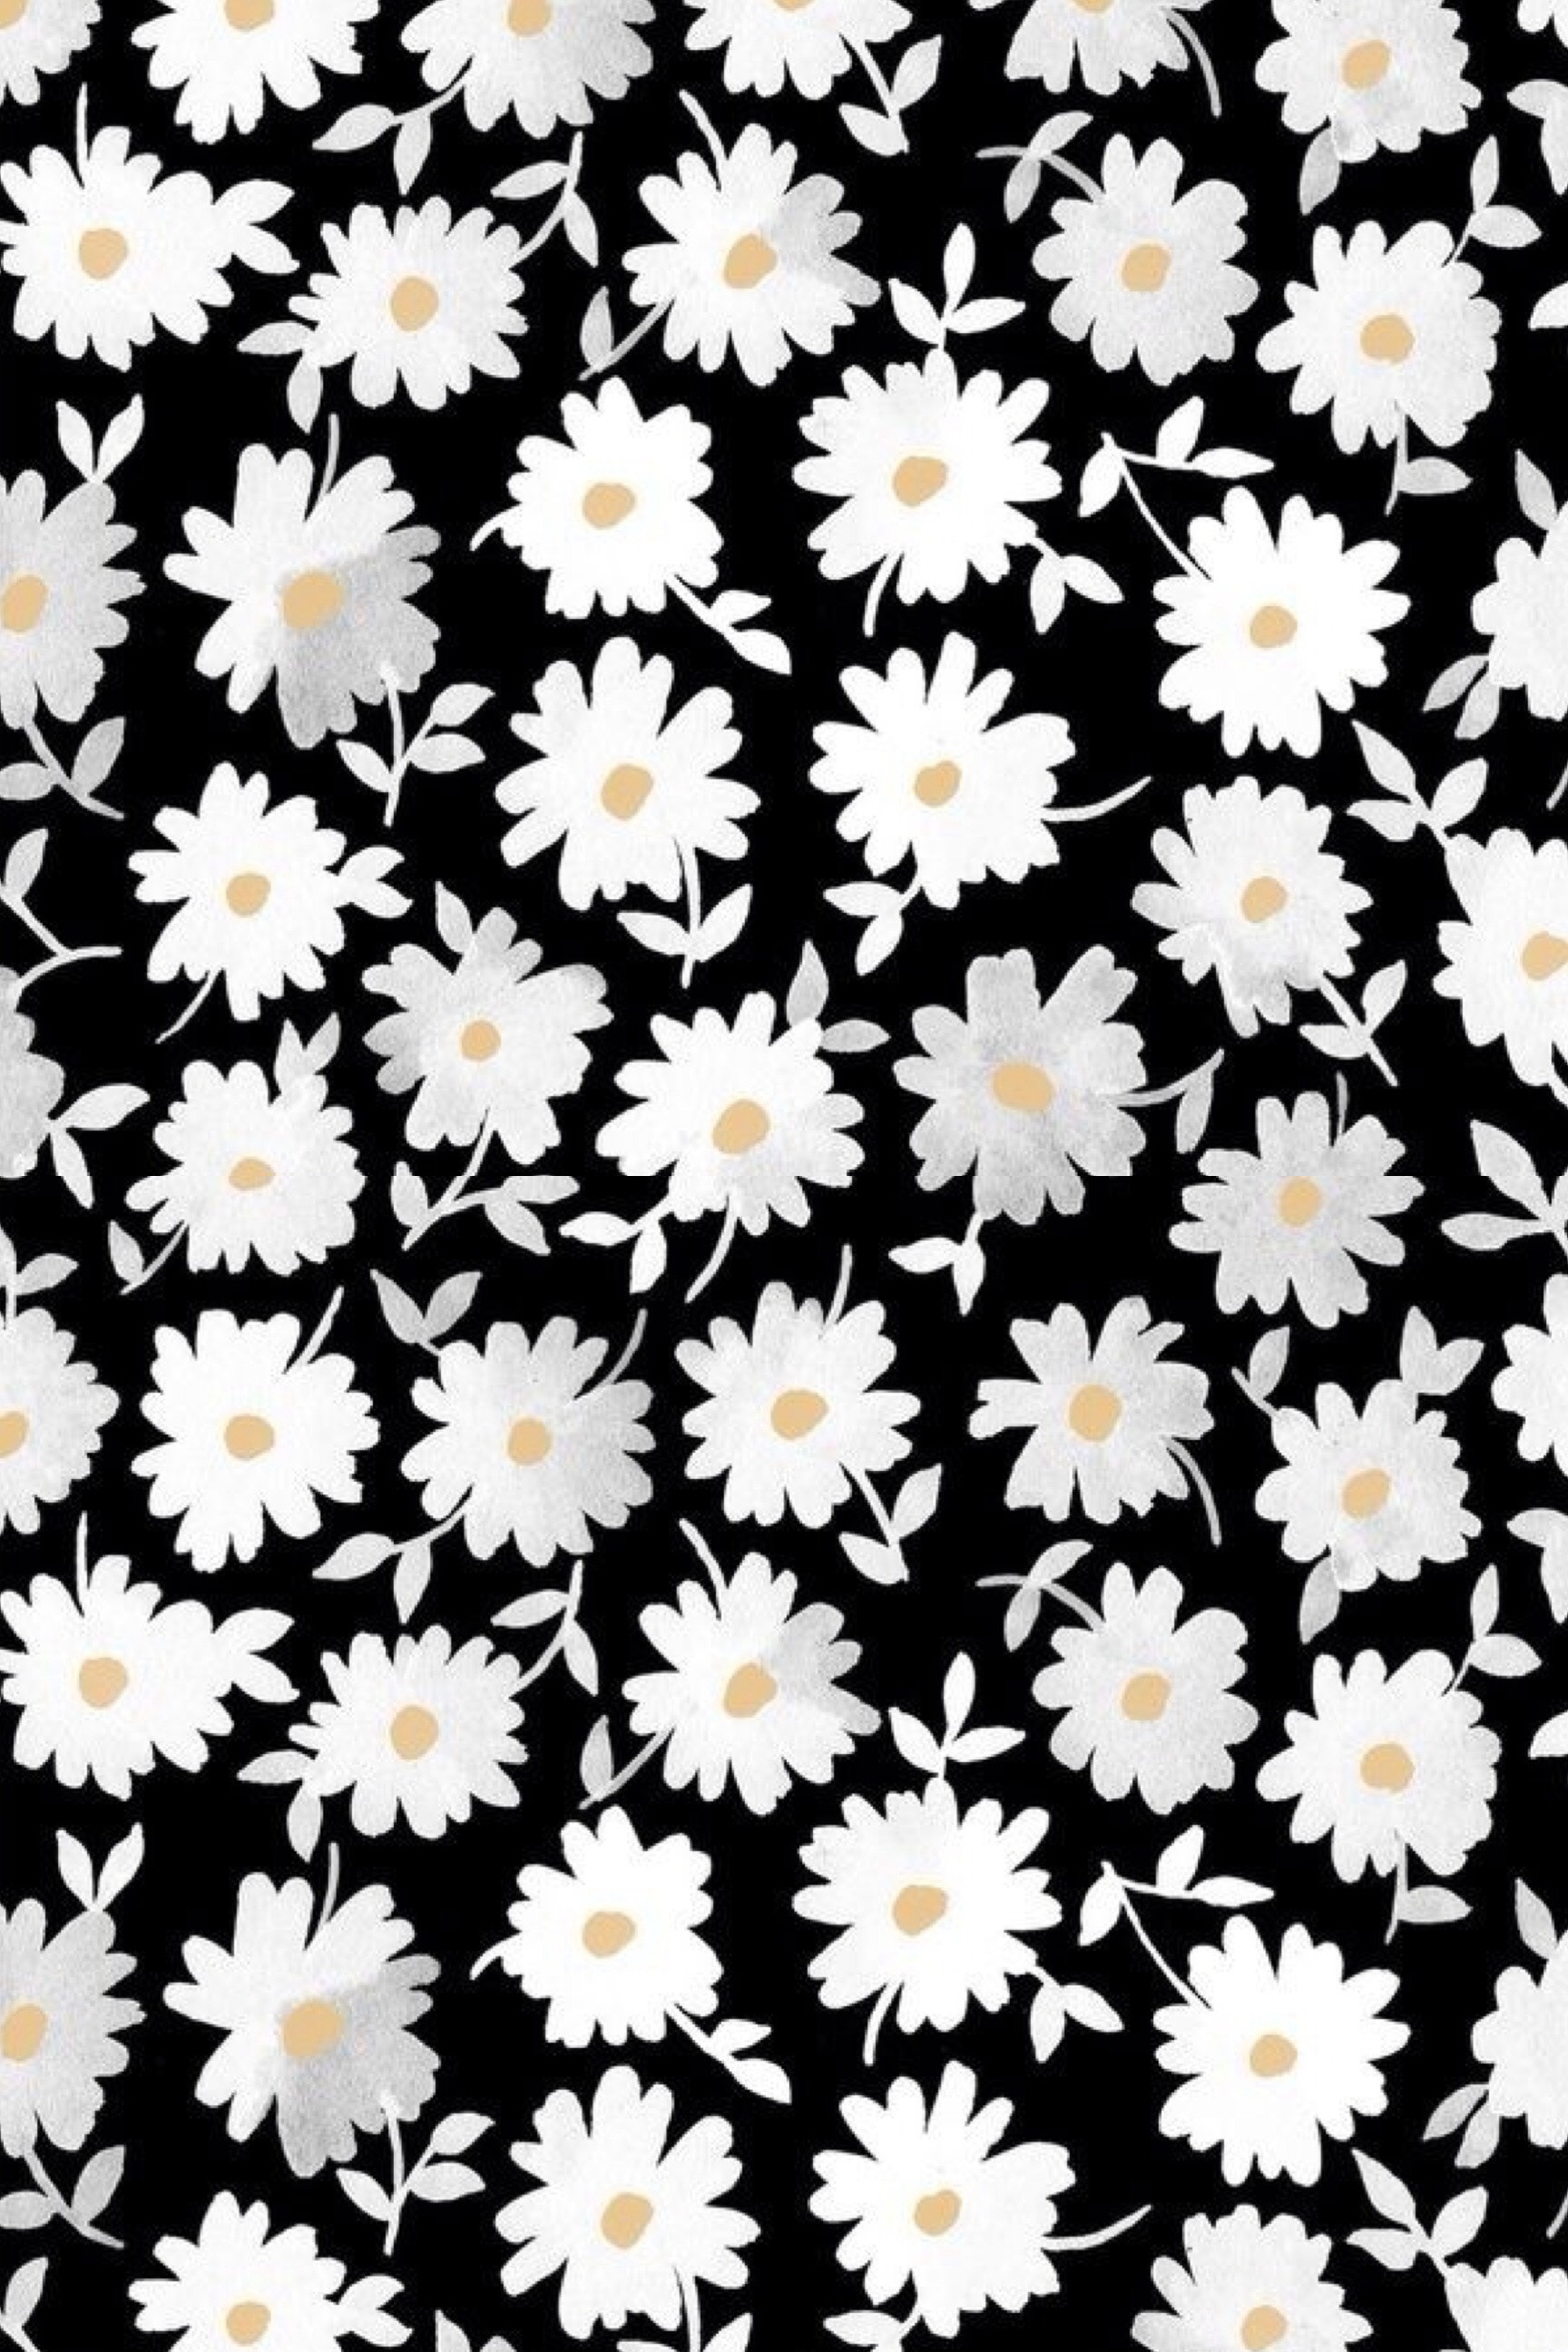 Daisy Wallpaper Background Wallpapertag